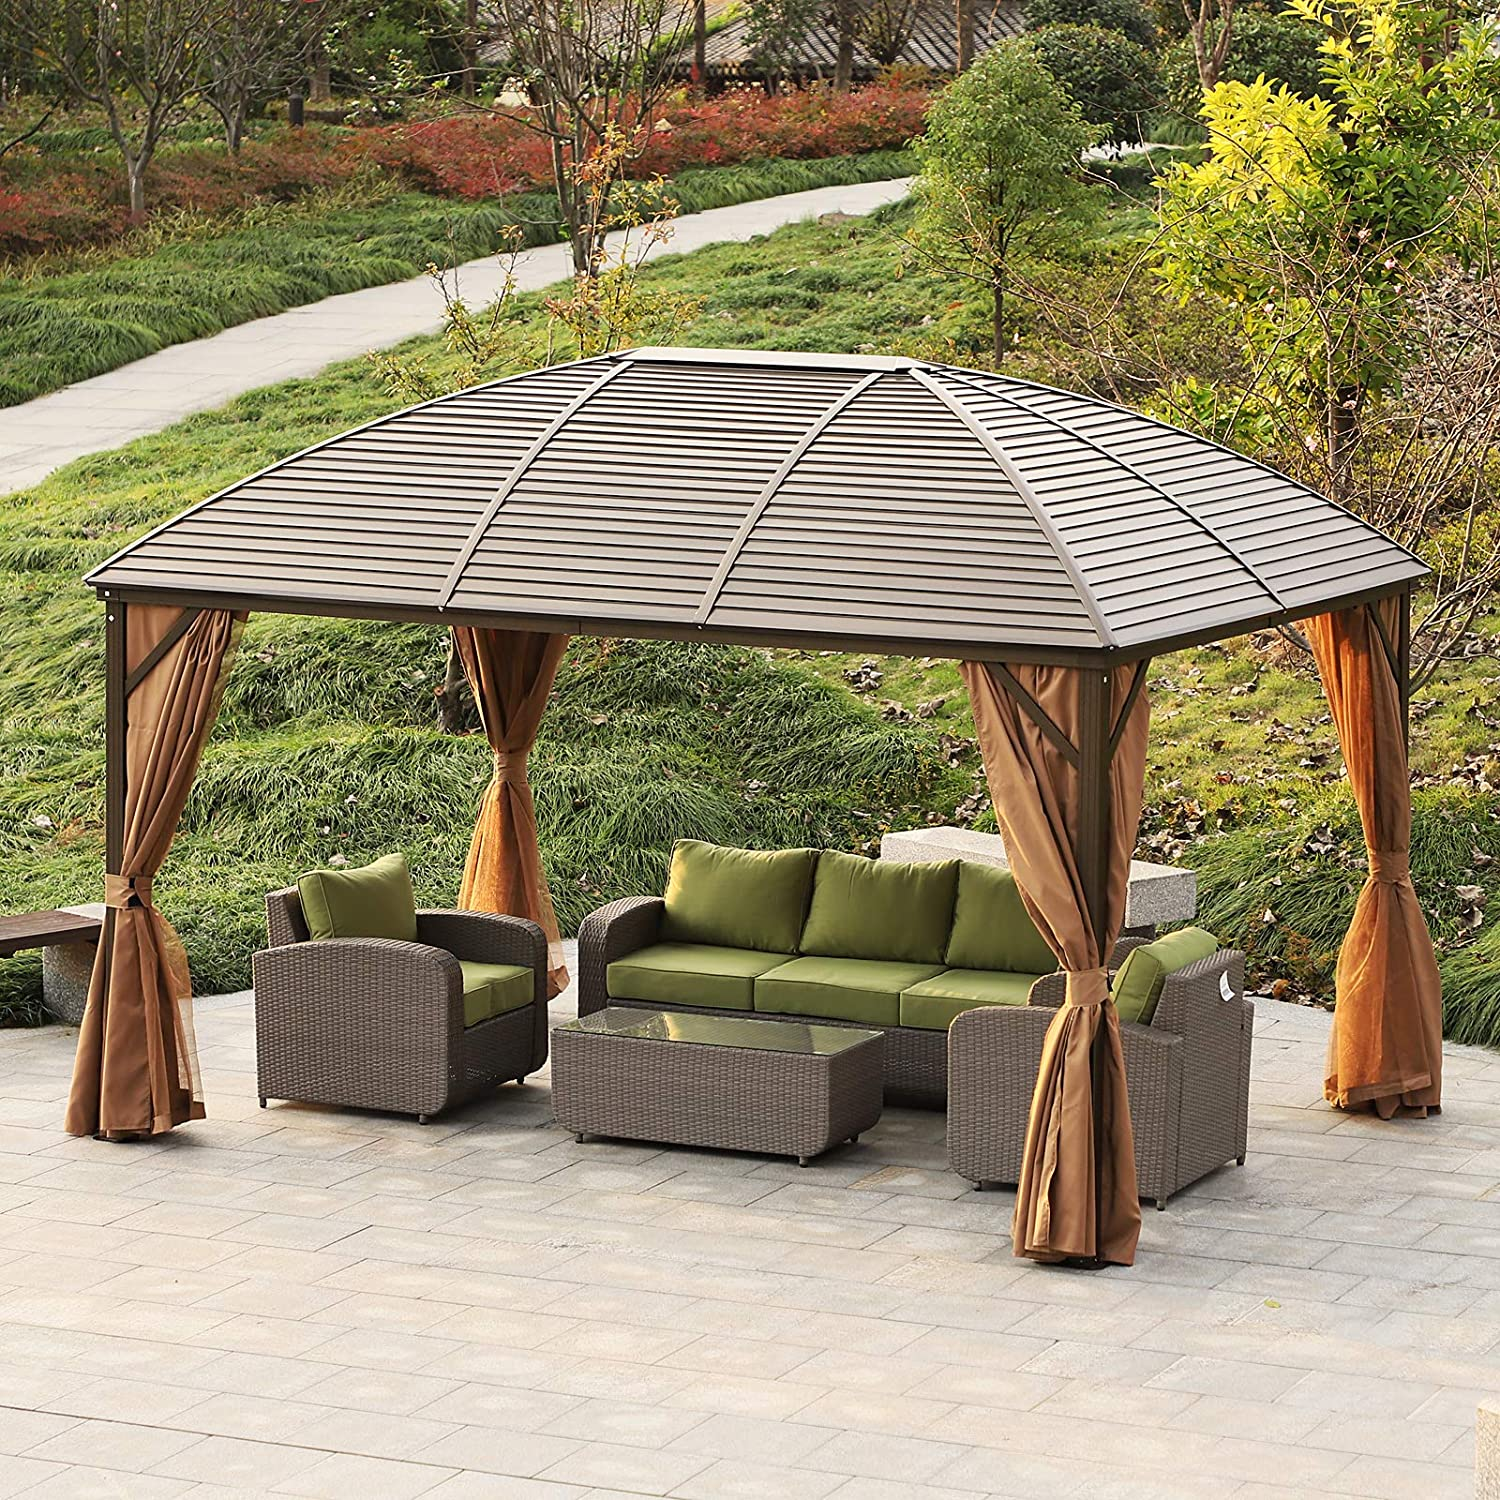 Outsunny – Carpa de jardín, Carpa para Fiestas, Carpa Plegable, 4 ...